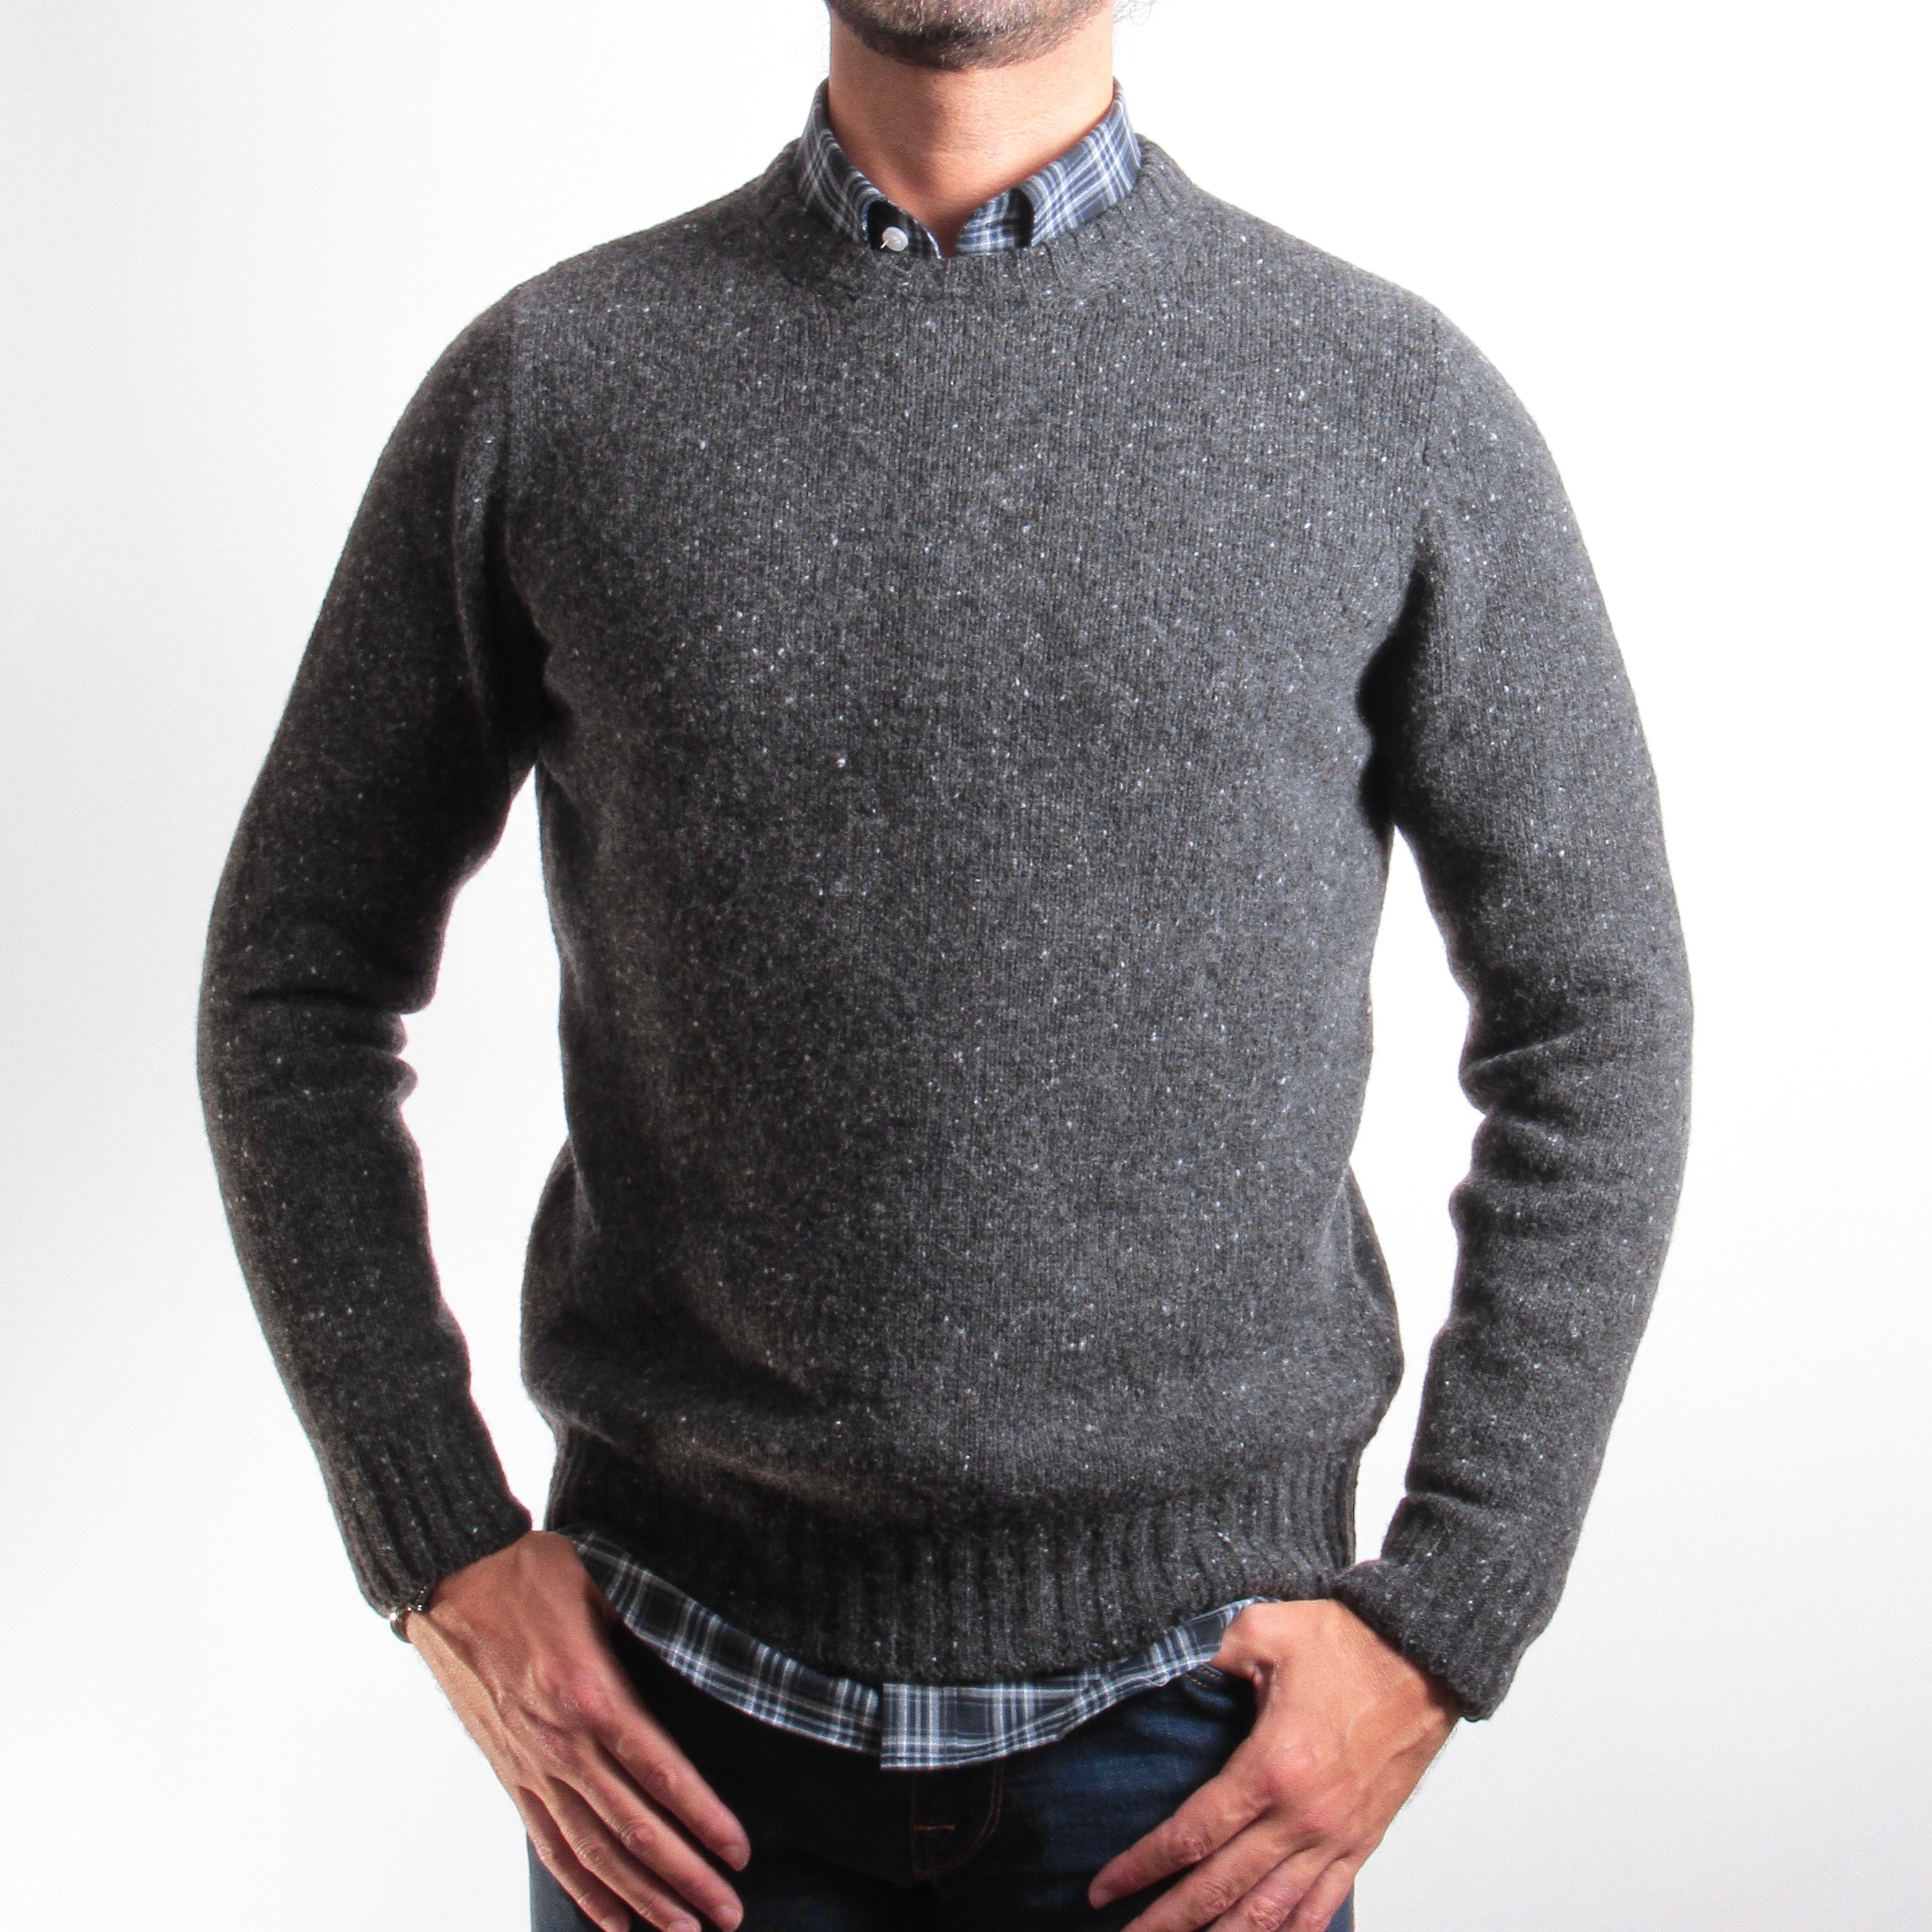 Pull chiné : gris - Col rond (pulls)